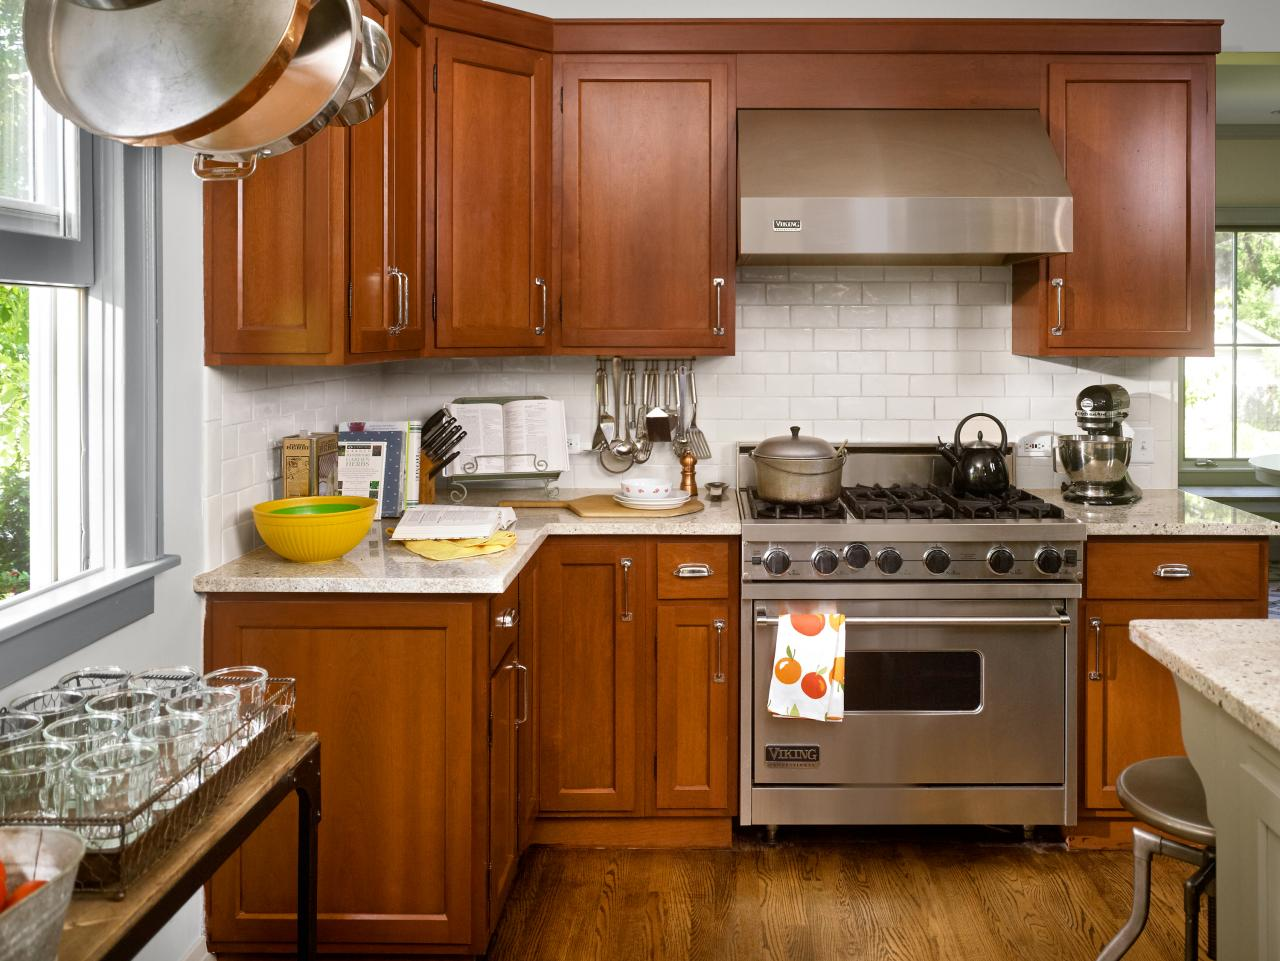 Kitchen Design Ideas For Small Kitchens November 2012: Small Kitchen Storage Ideas: Pictures & Tips From HGTV